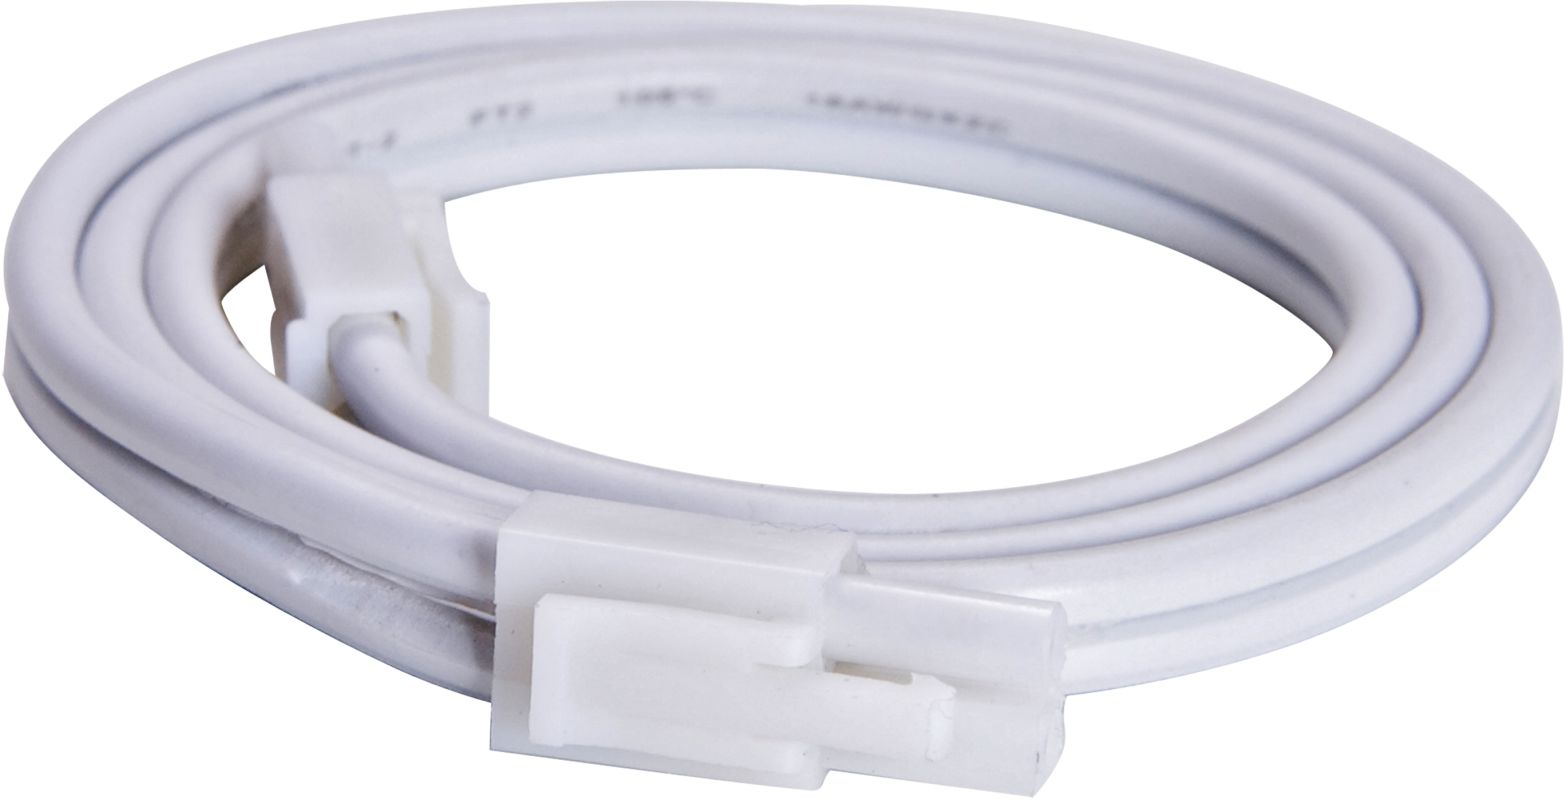 "Maxim 87818 9"" Interlink Cord from the CounterMax MX-L Collection"